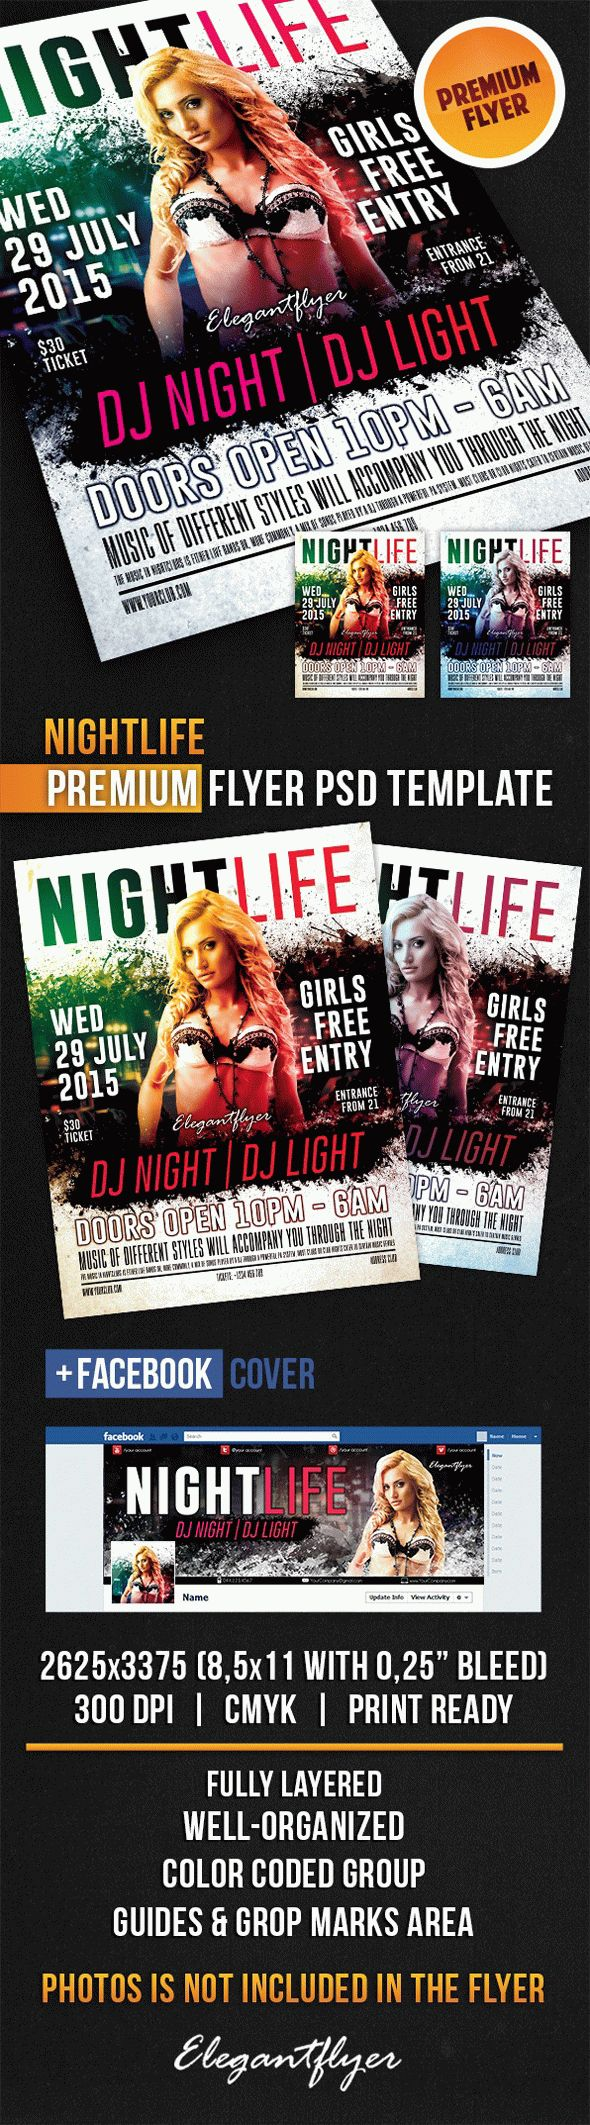 Nightlife – Flyer PSD Template